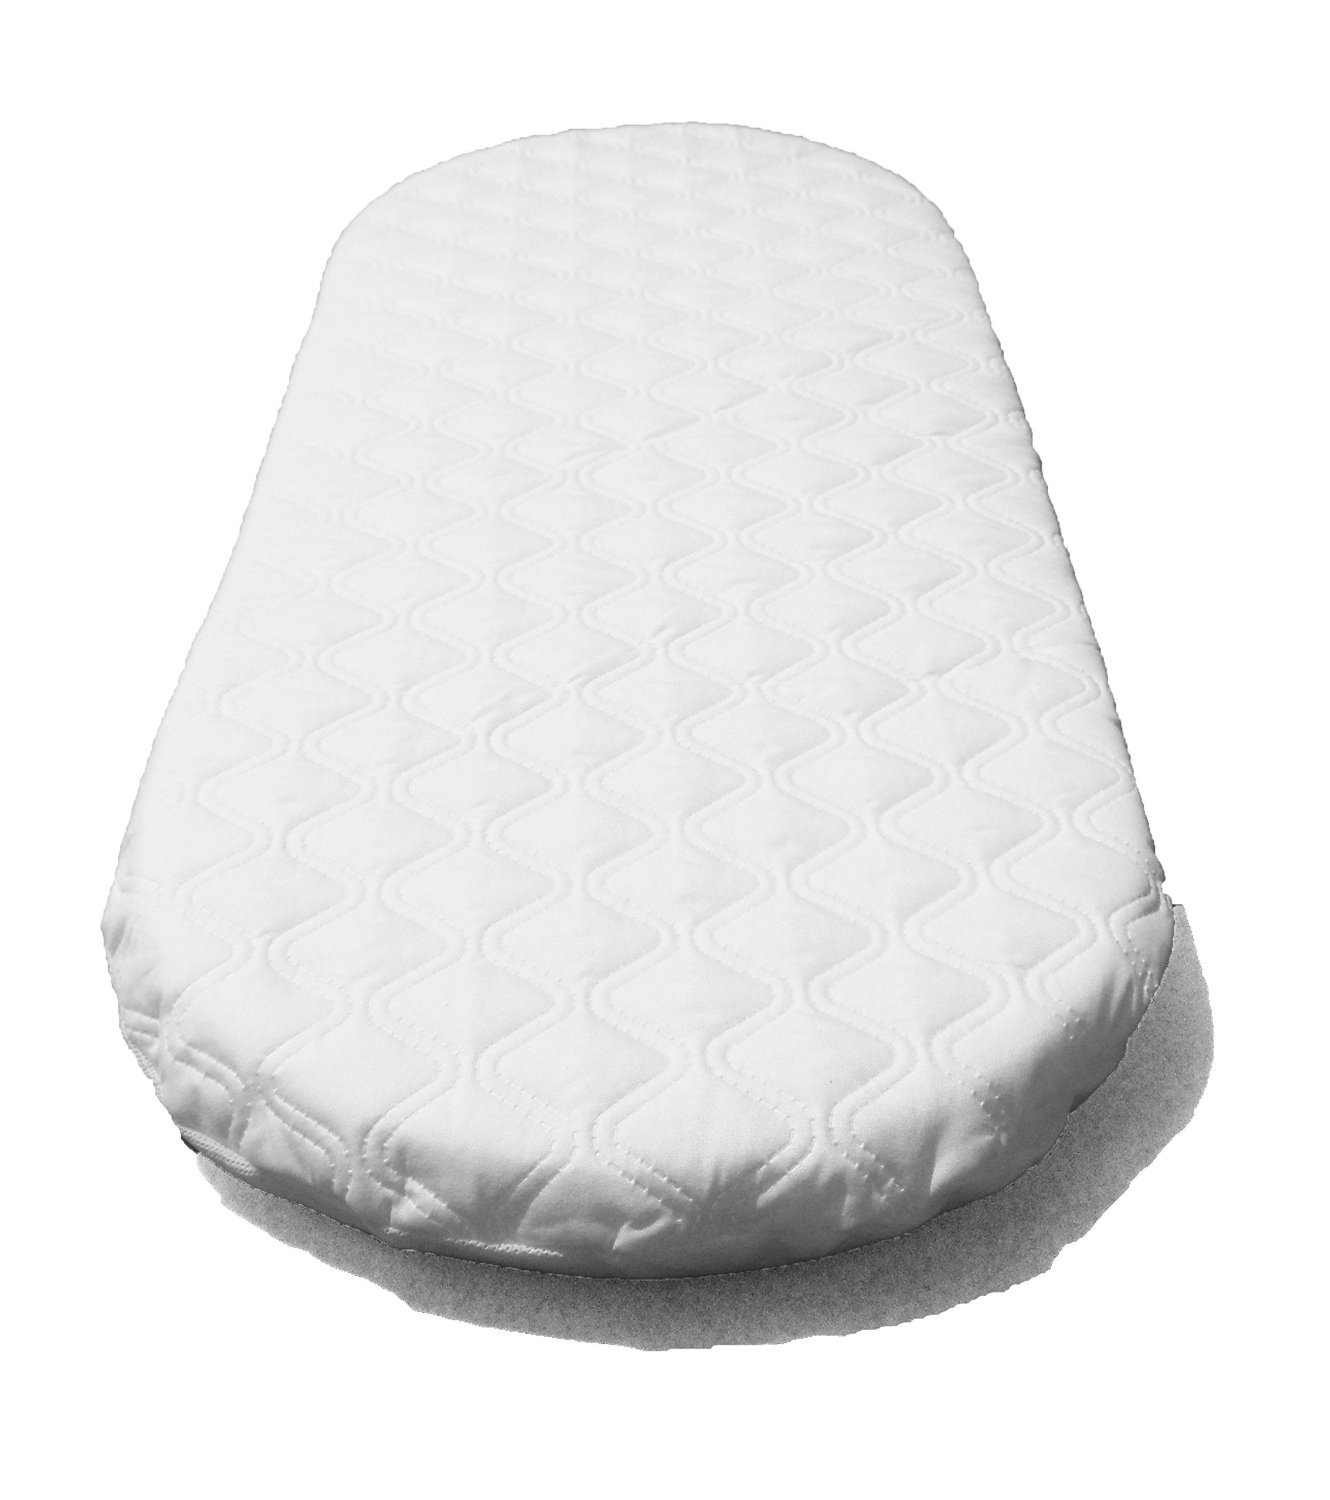 SUZY Microfibre Hypoallergenic Moses Basket Mattress 66x28 x 4cm Thick OVAL SHAPED Will Fit Mothercare Moses Baskets SUZY-mc-6628